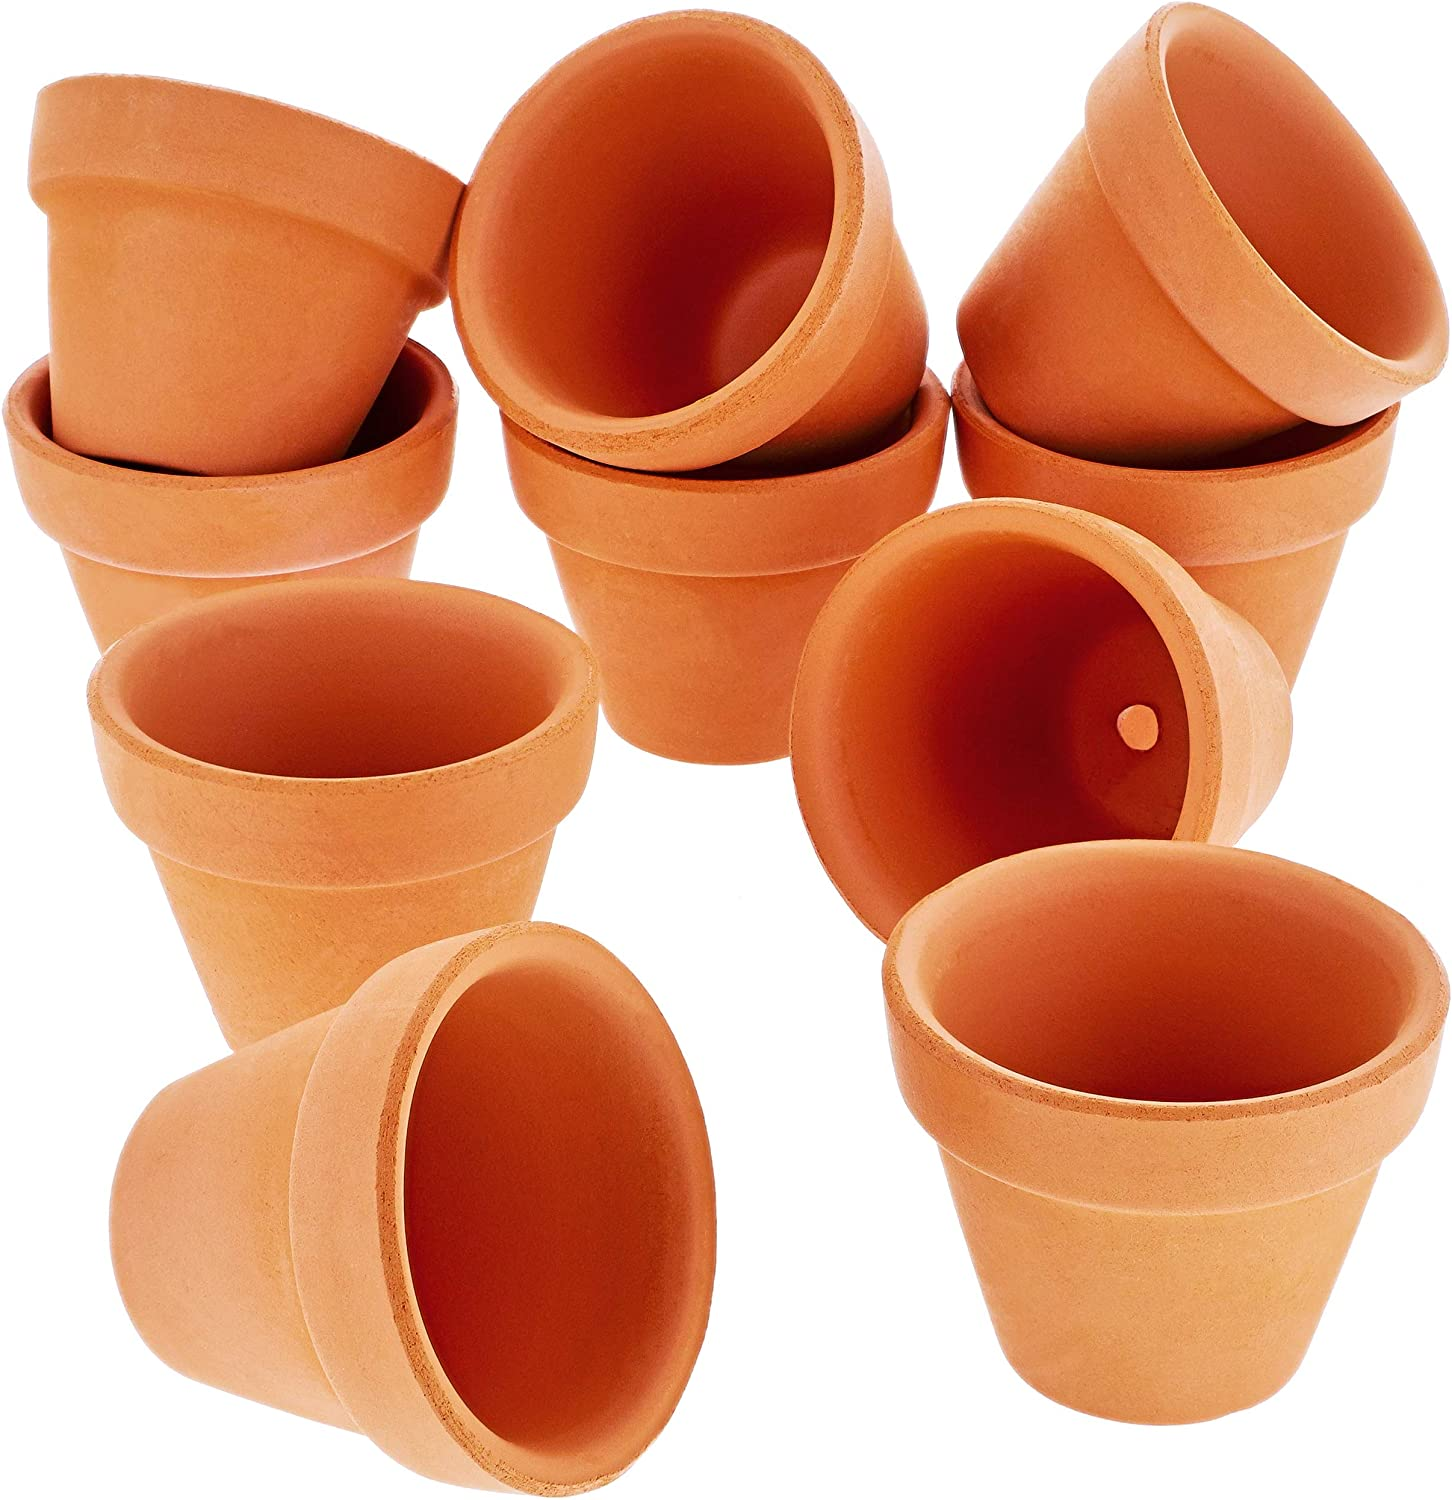 Succulent Pots, OAMCEG 4 Inch Succulent Planters, Set of 6 White Ceramic Succulent Cactus Plant Pots with Bamboo Tray Plants NOT Included